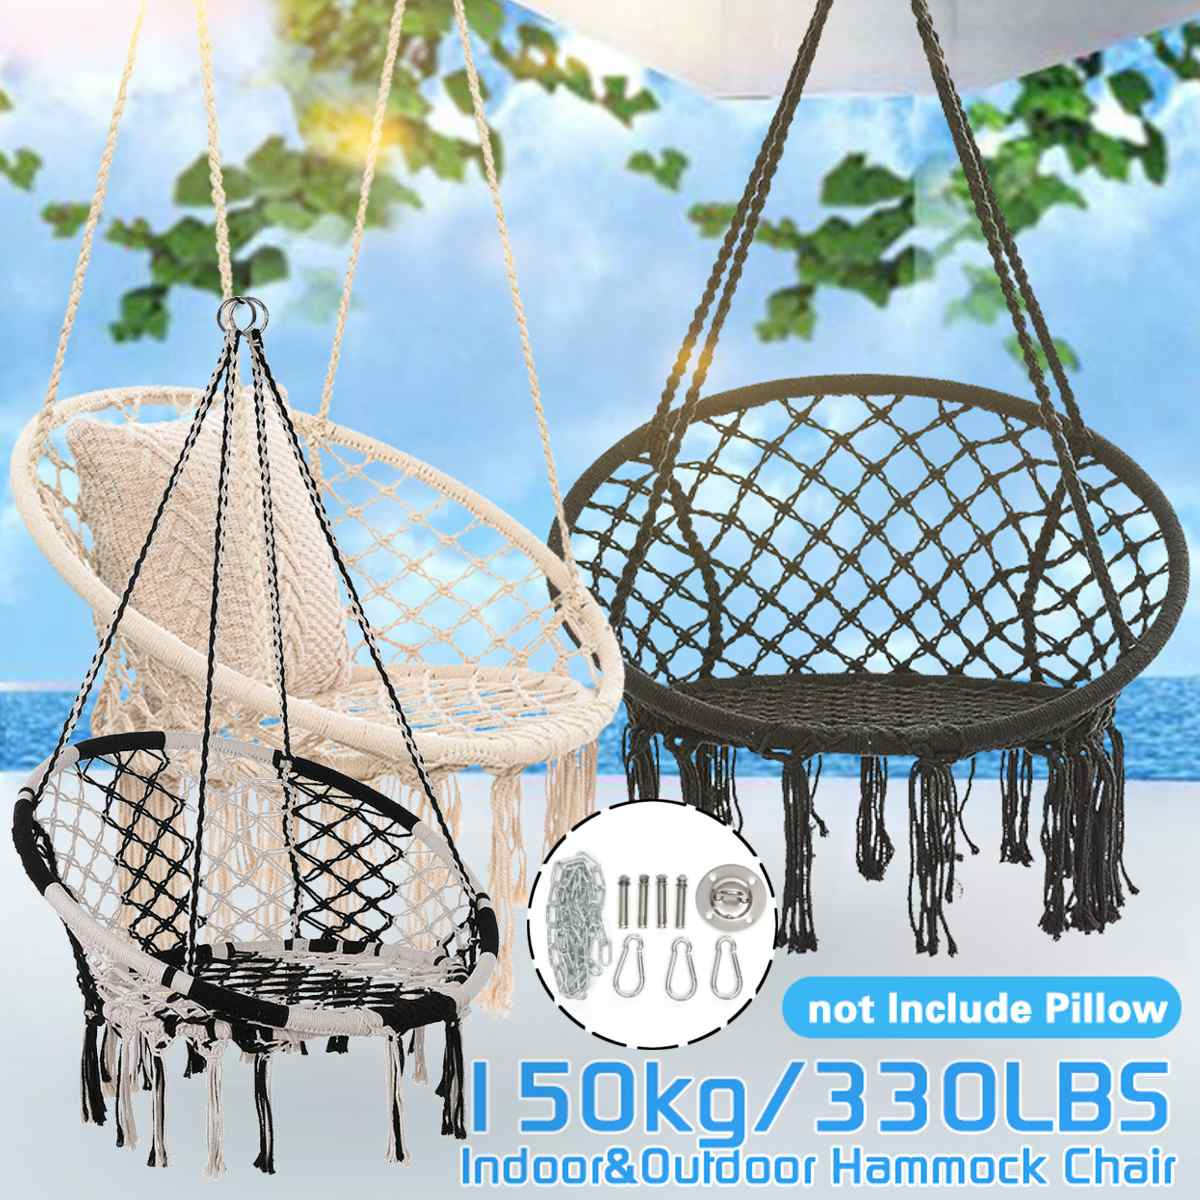 Hammock Mount Swing Hanging Trapeze Hanger Stainless Steel Base Ceiling Hooks Suspension Yoga Hammock Hanging Chair Accessories